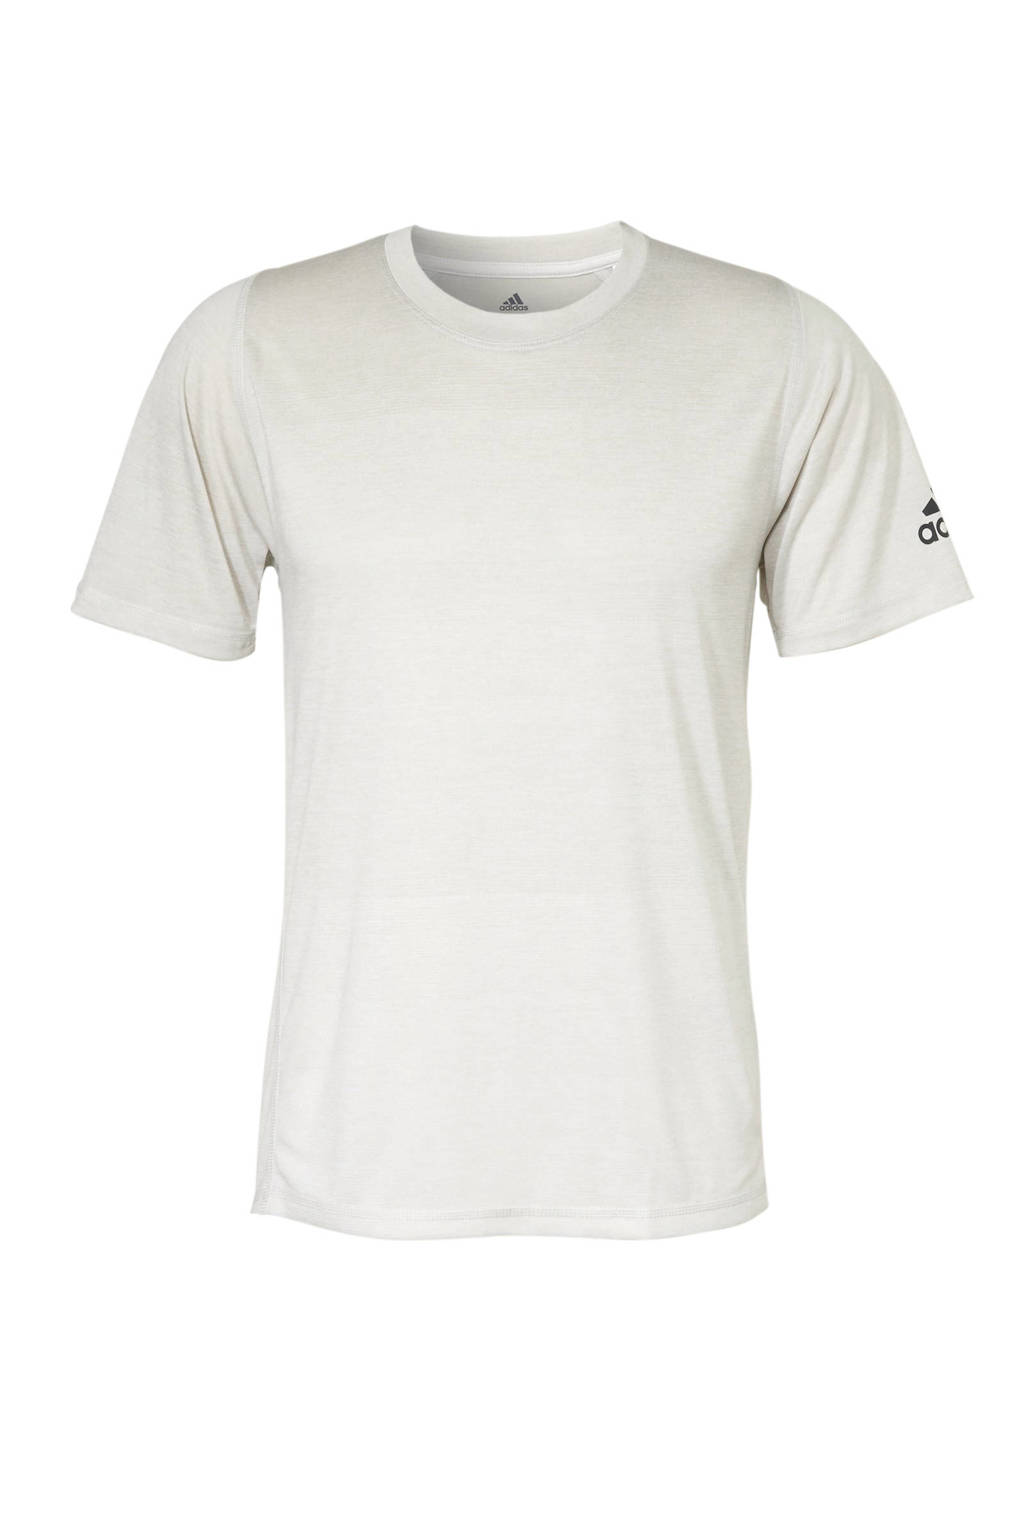 adidas performance   sport T-shirt, Wit